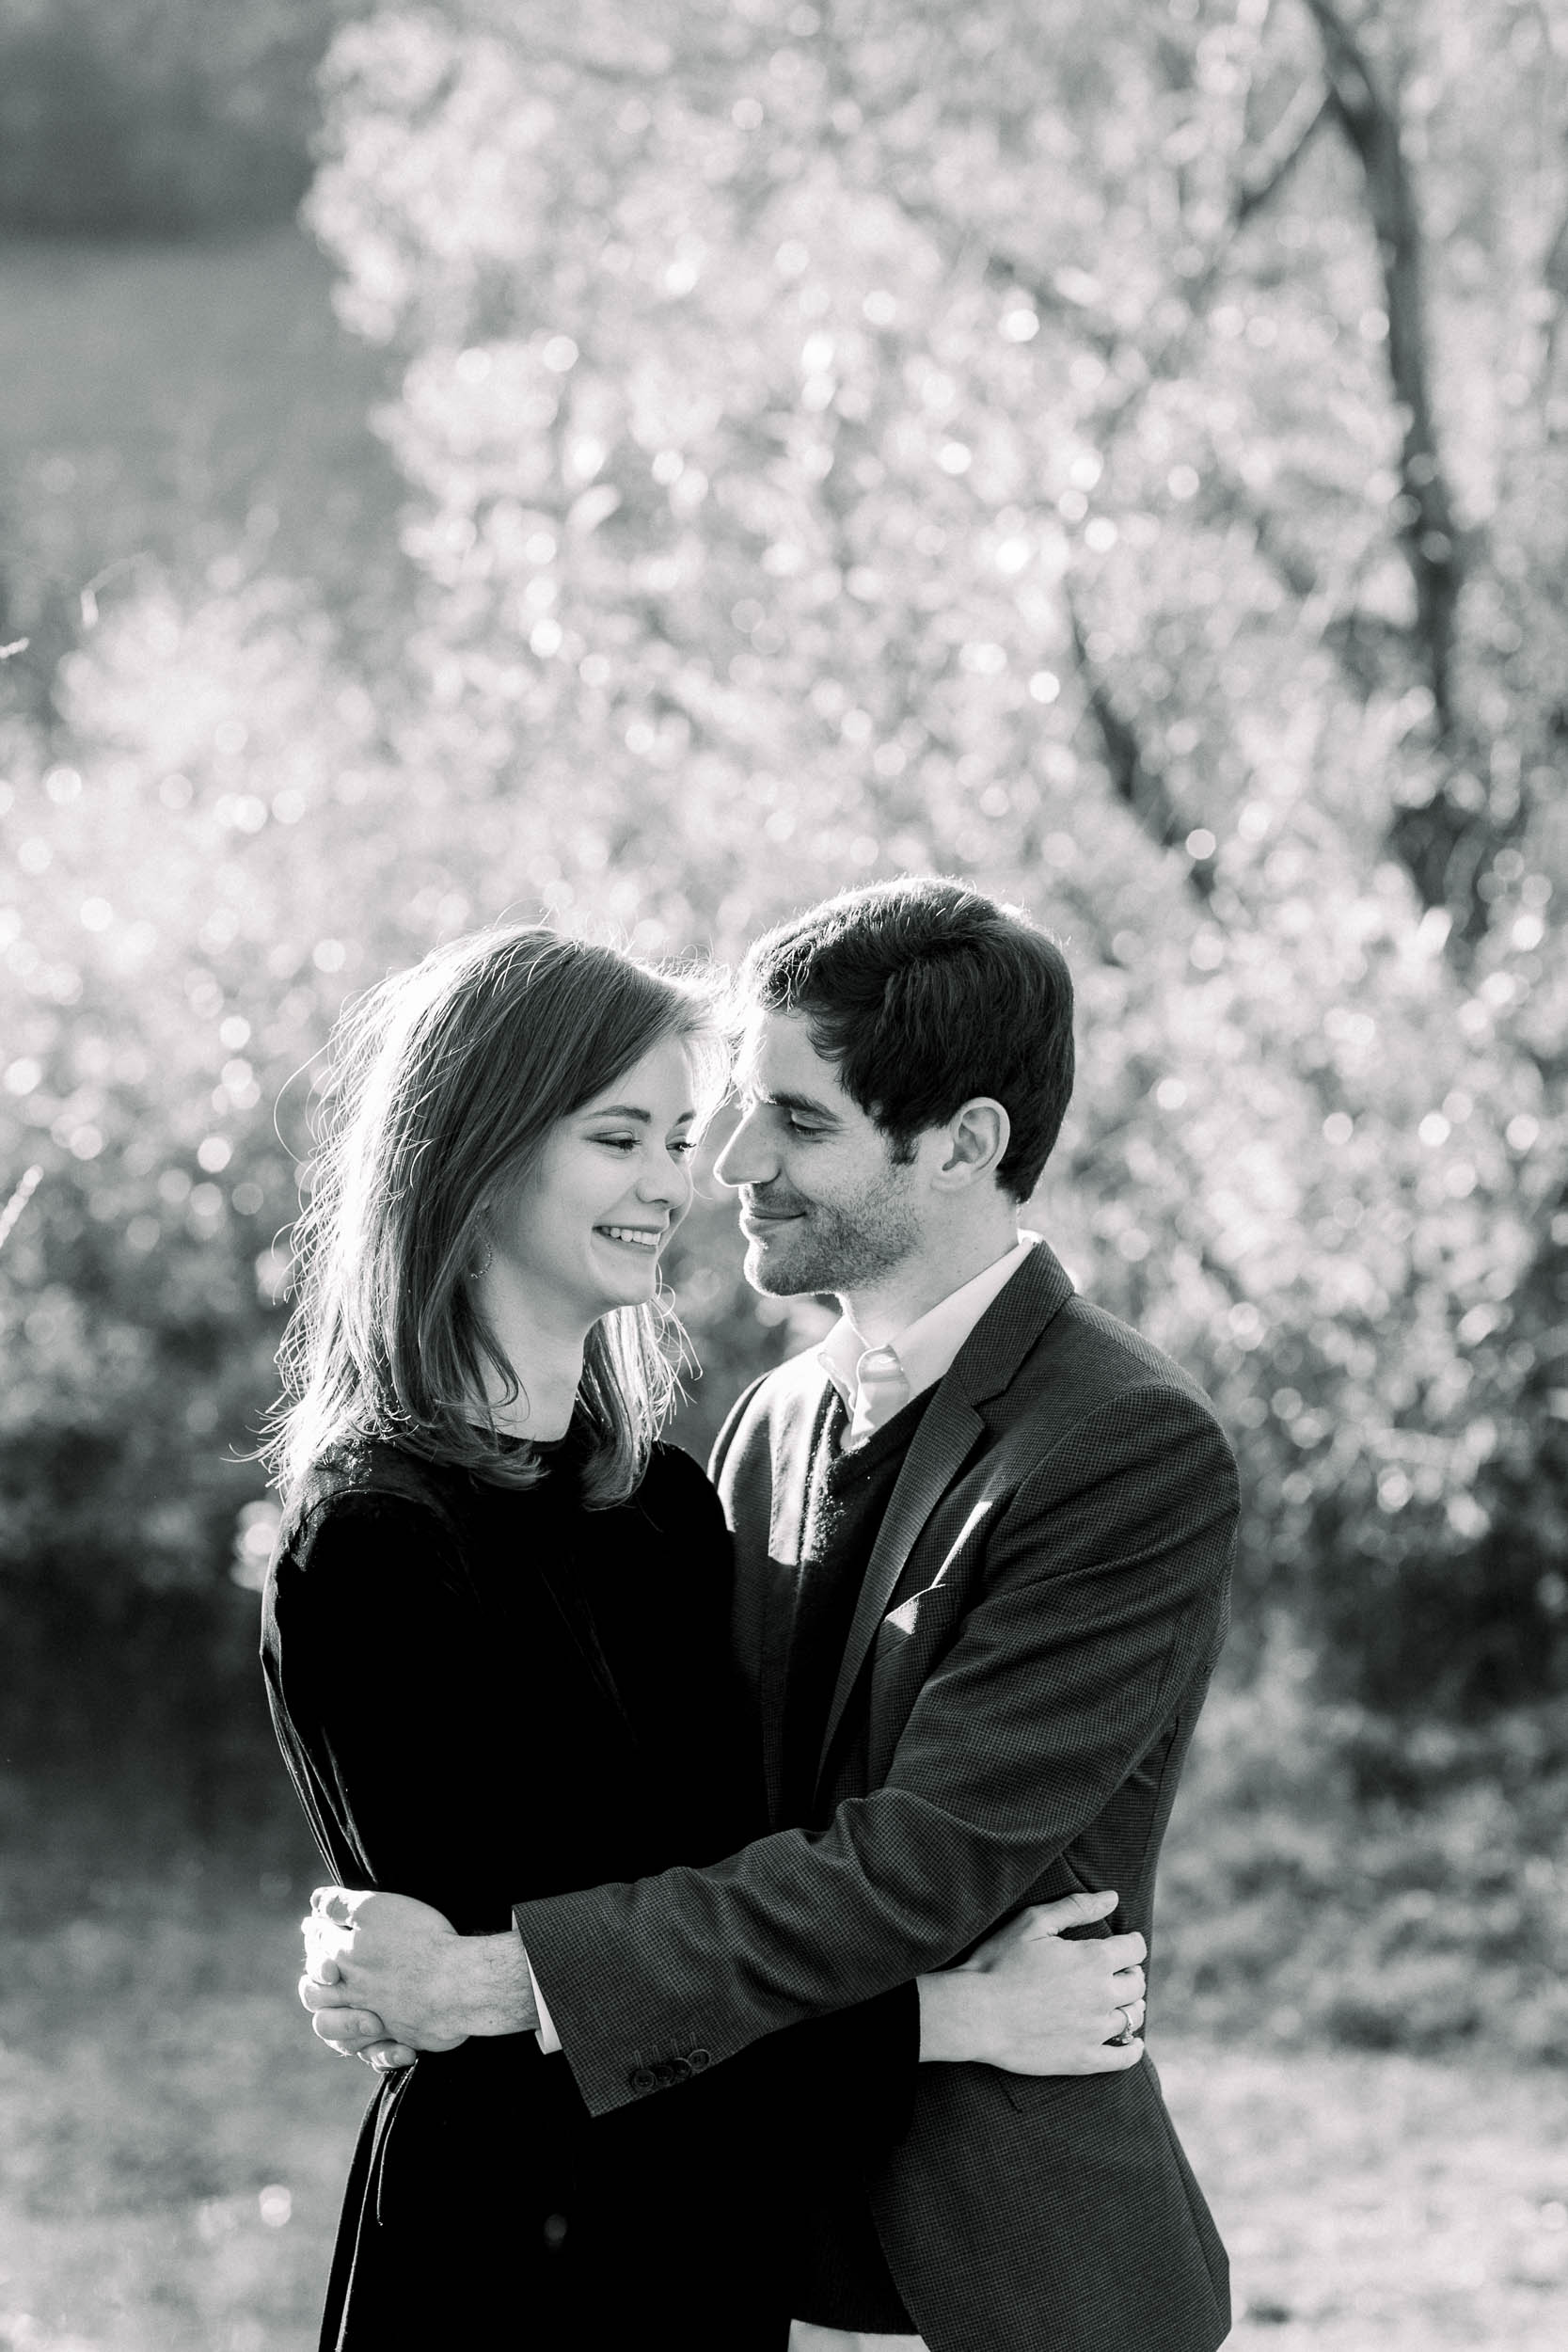 010319_E+J_Foothills Park Engagement_Buena Lane Photography_30-2.jpg